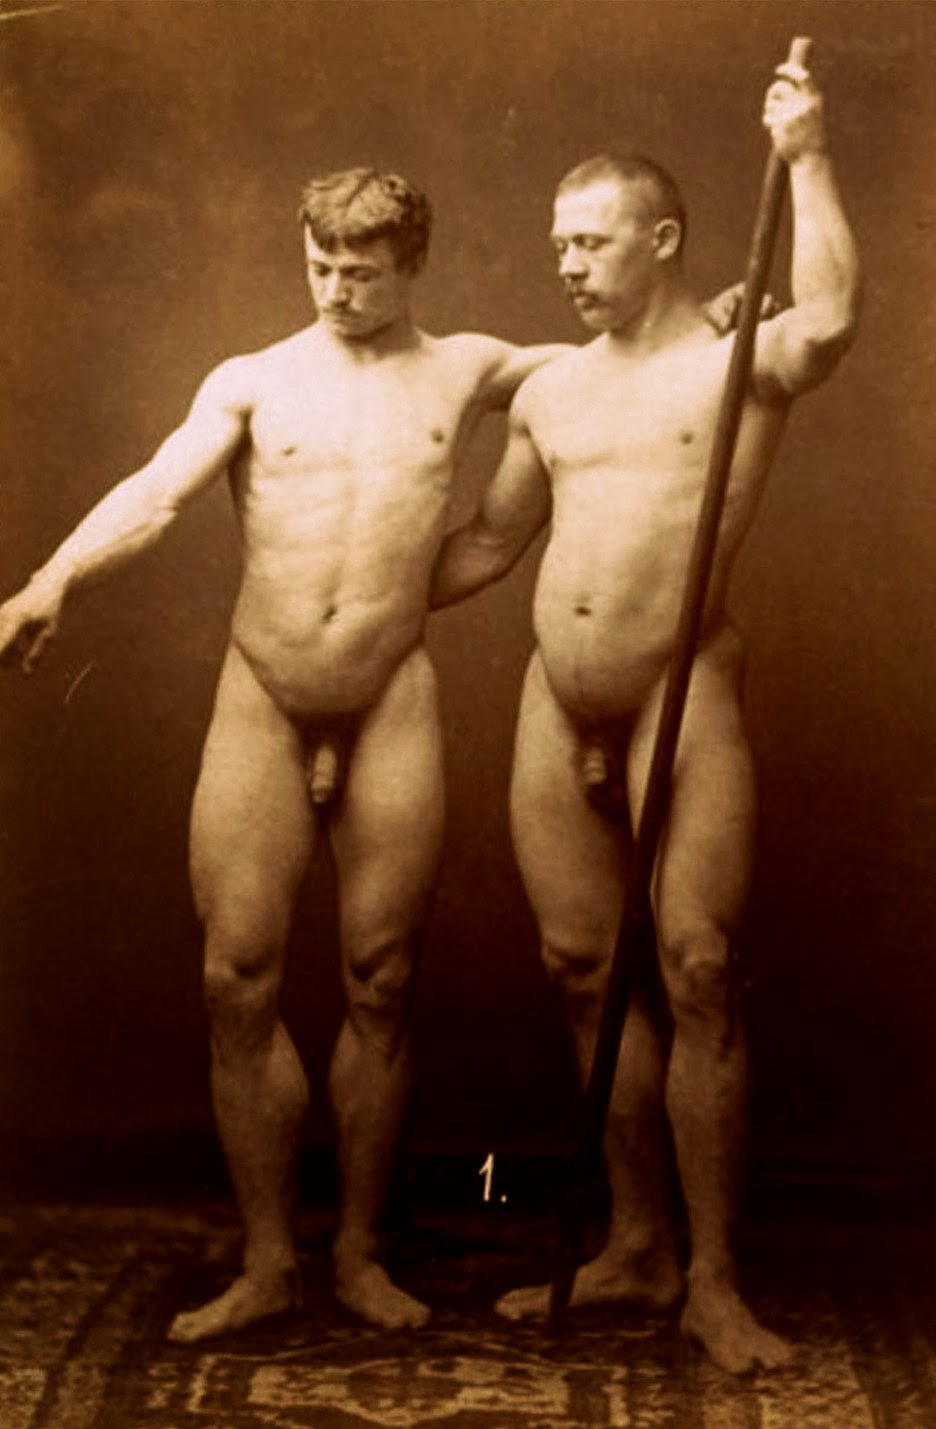 Consider, that Male physique vintage erotica doug courtney opinion